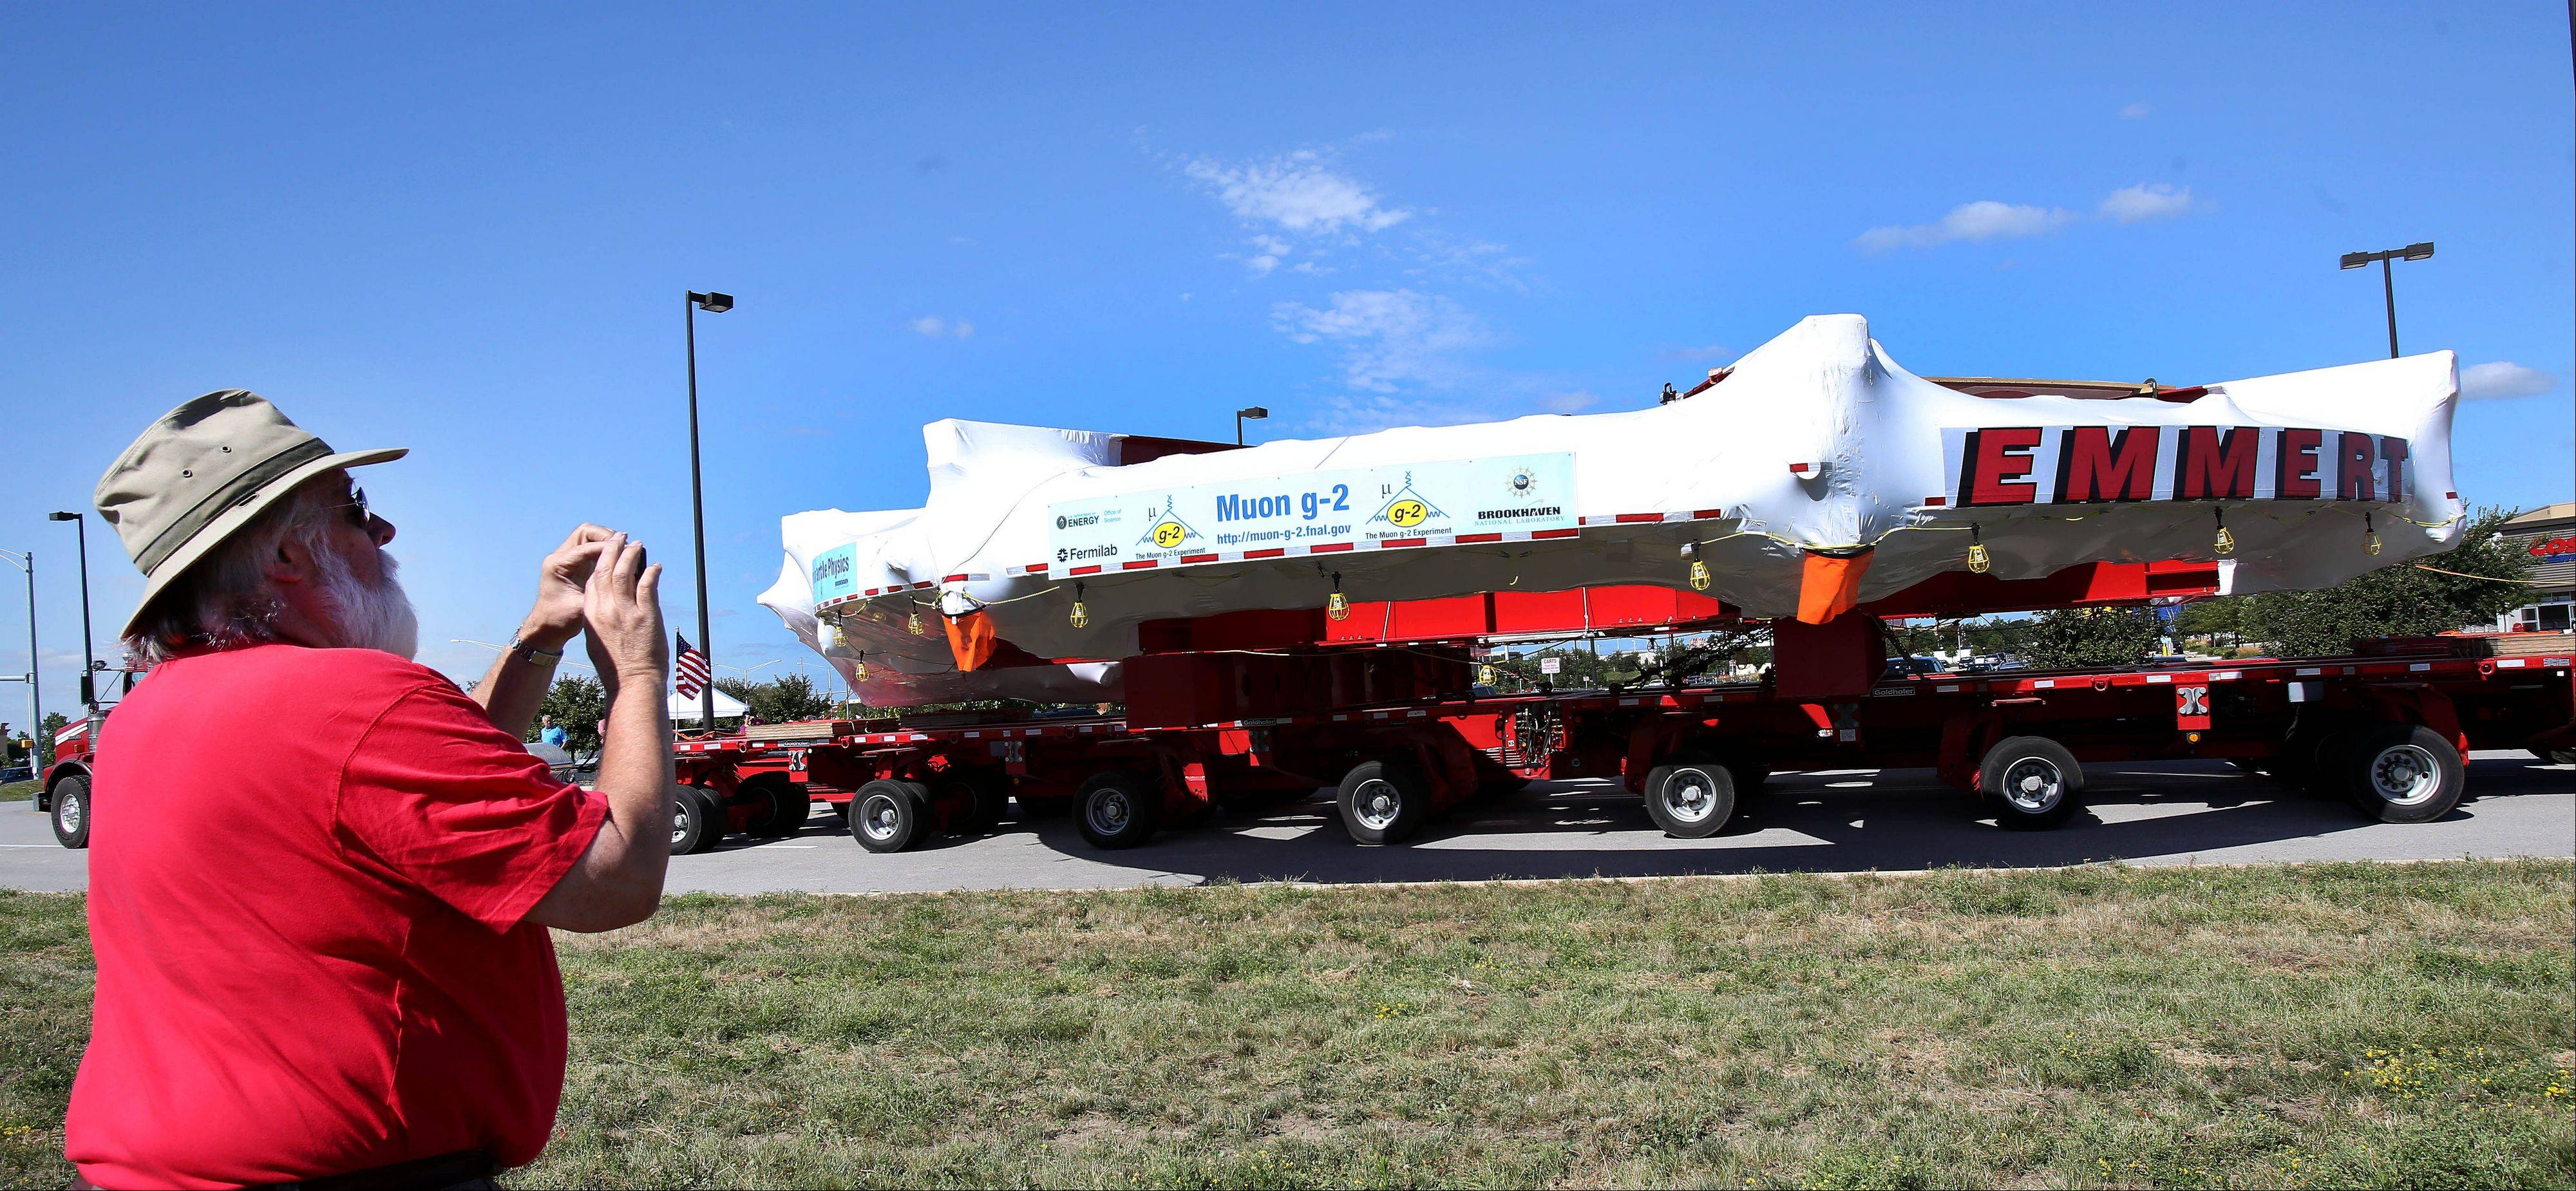 Chris Otis of Woodridge gets a panoramic shot of a 50-ft-wide magnet making its way from Brookhaven National Laboratory in New York to Fermilab in Batavia. It made a stop on Wednesday at the Costco parking lot in Bolingbrook.